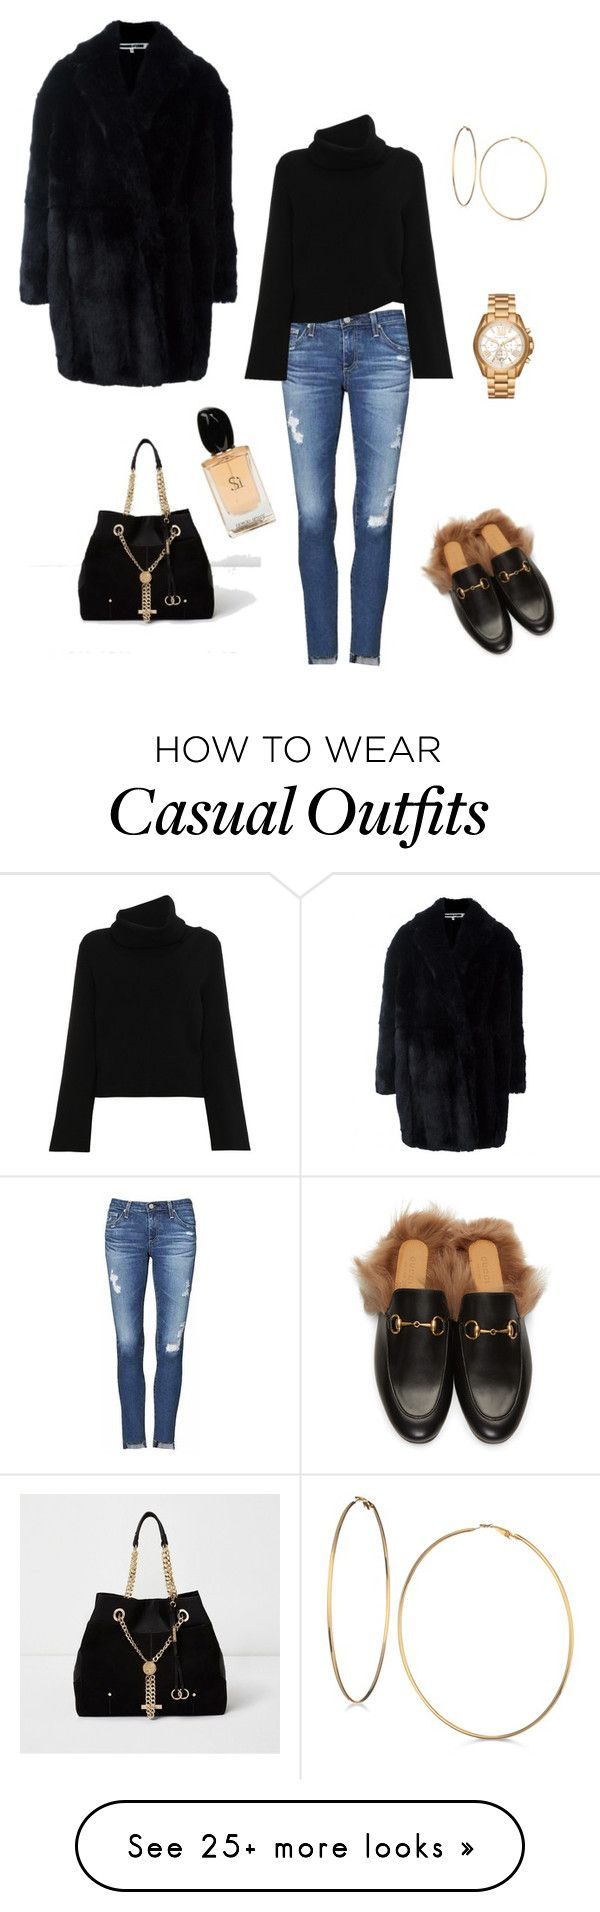 """""""casual comfy mum"""" by claredurrant on Polyvore featuring AG Adriano Goldschmied, Chloé, McQ by Alexander McQueen, Gucci, River Island, GUESS, Michael Kors and Giorgio Armani"""